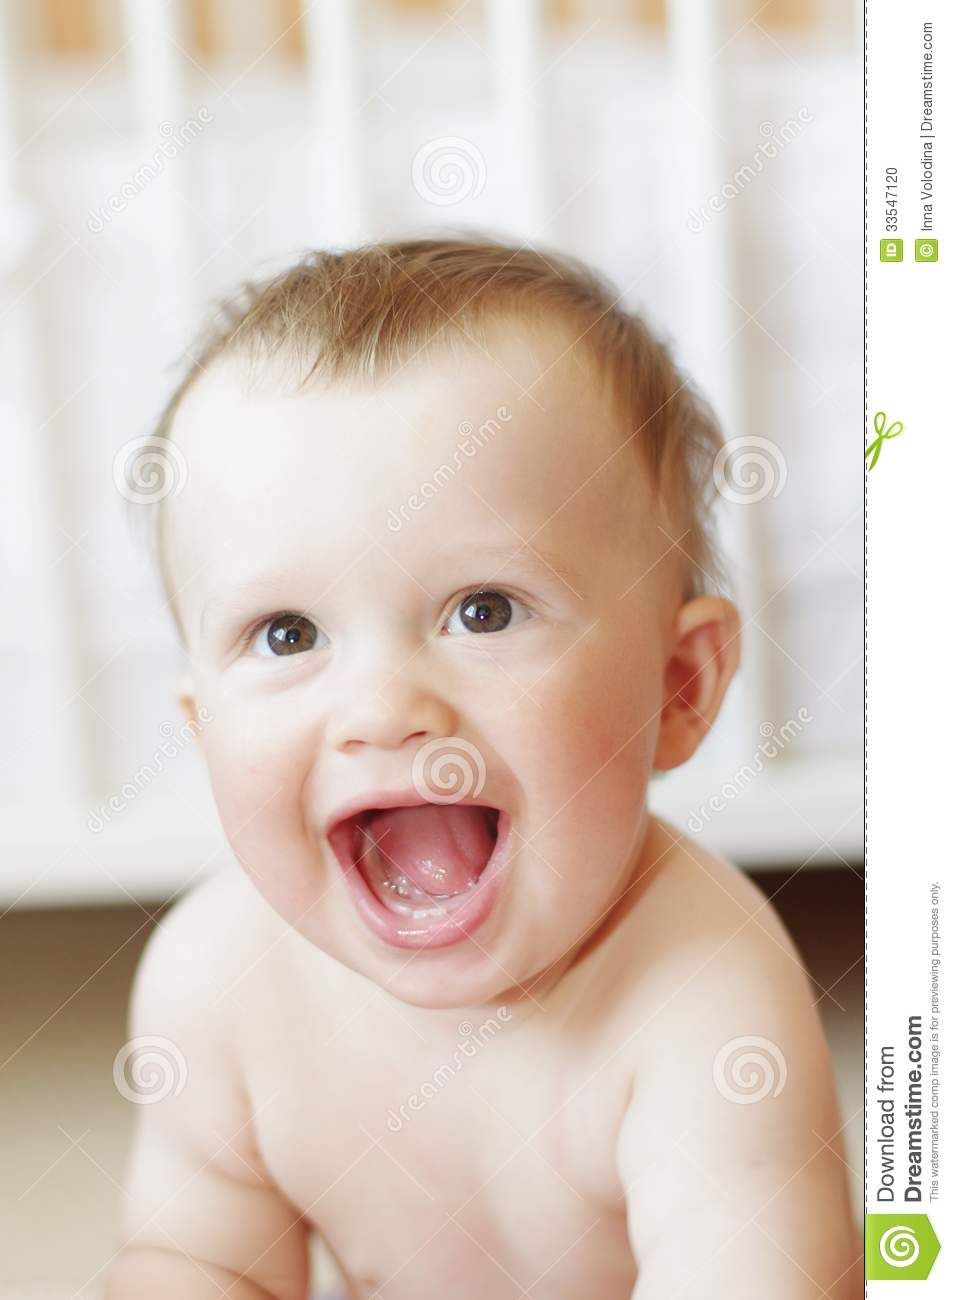 funny photos baby laughing - photo #26